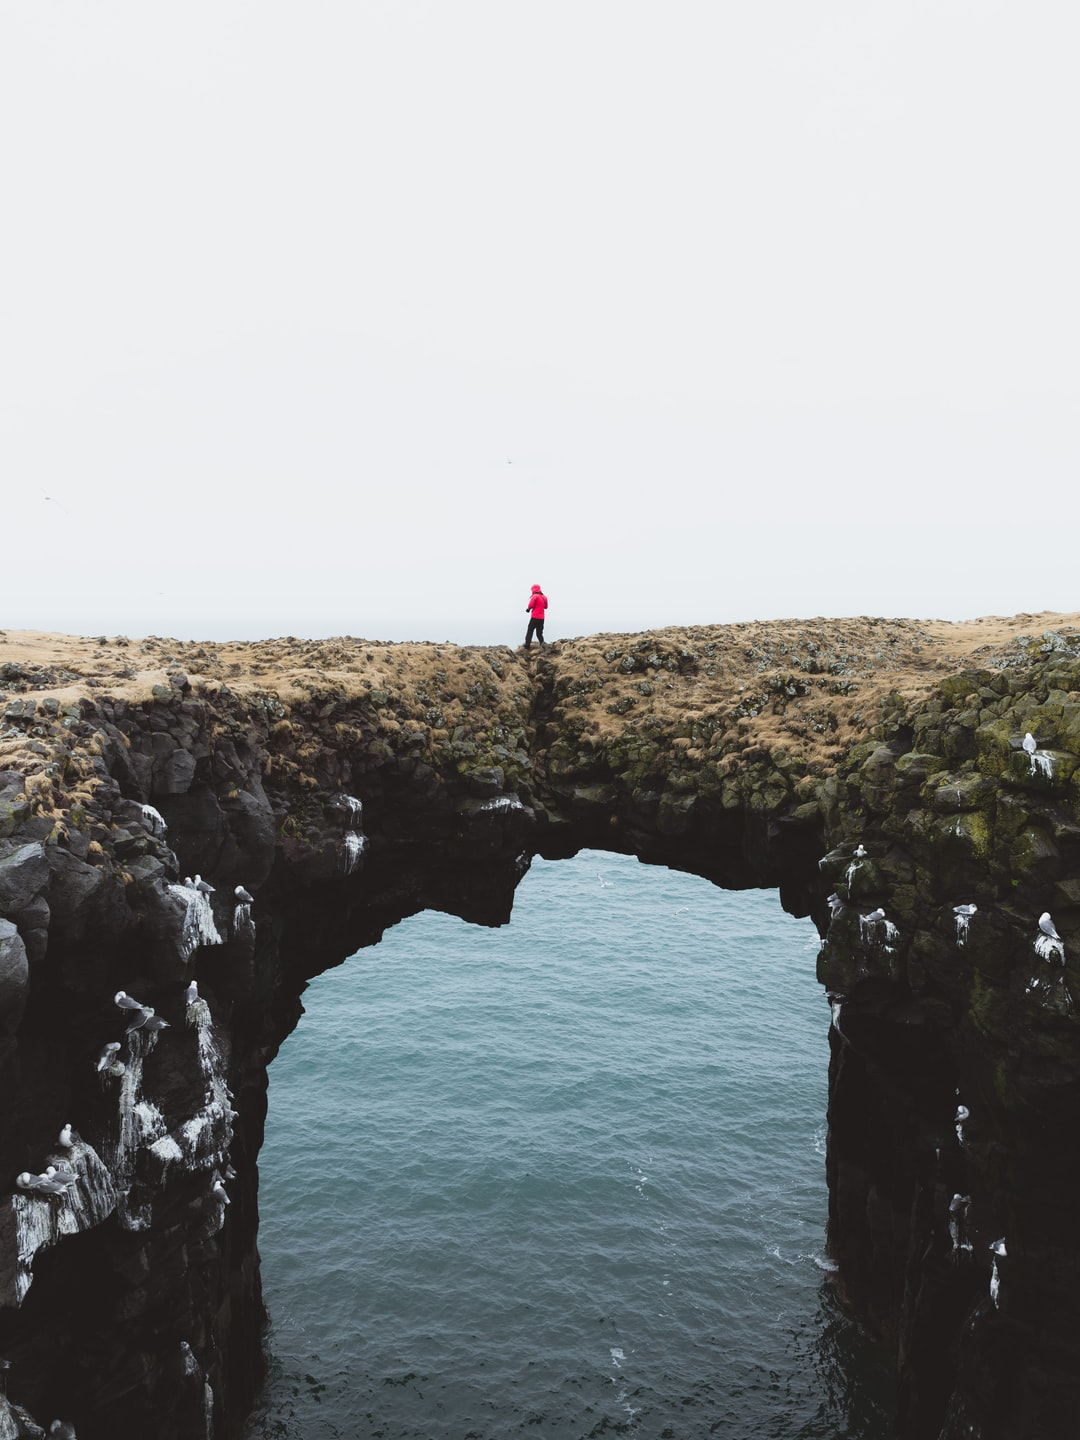 A man stands on the natural rock bridge, perched above the ocean below, in an attempt to capture photos of the flying seagull